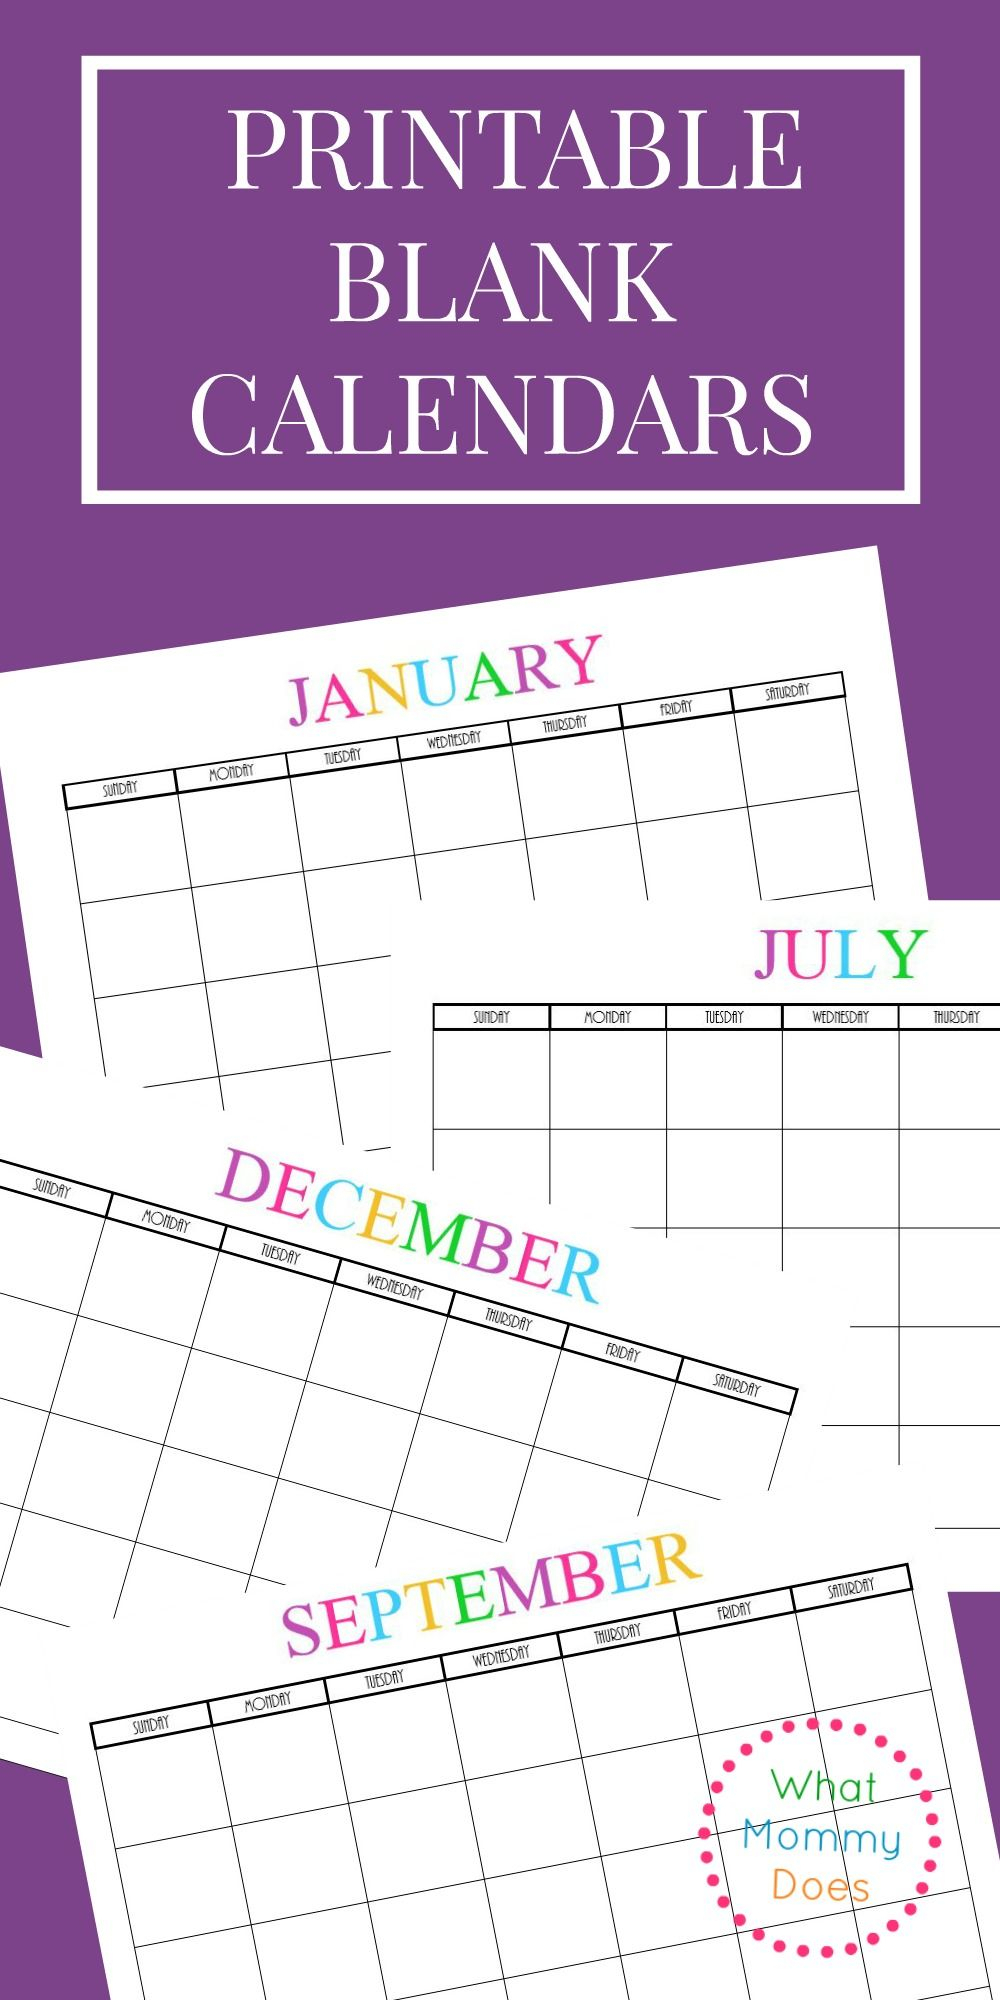 Free Printable Blank Monthly Calendars – 2018, 2019, 2020, 2021+ with Printable Month To Month Clalanders Wityh Lines 2019/2020